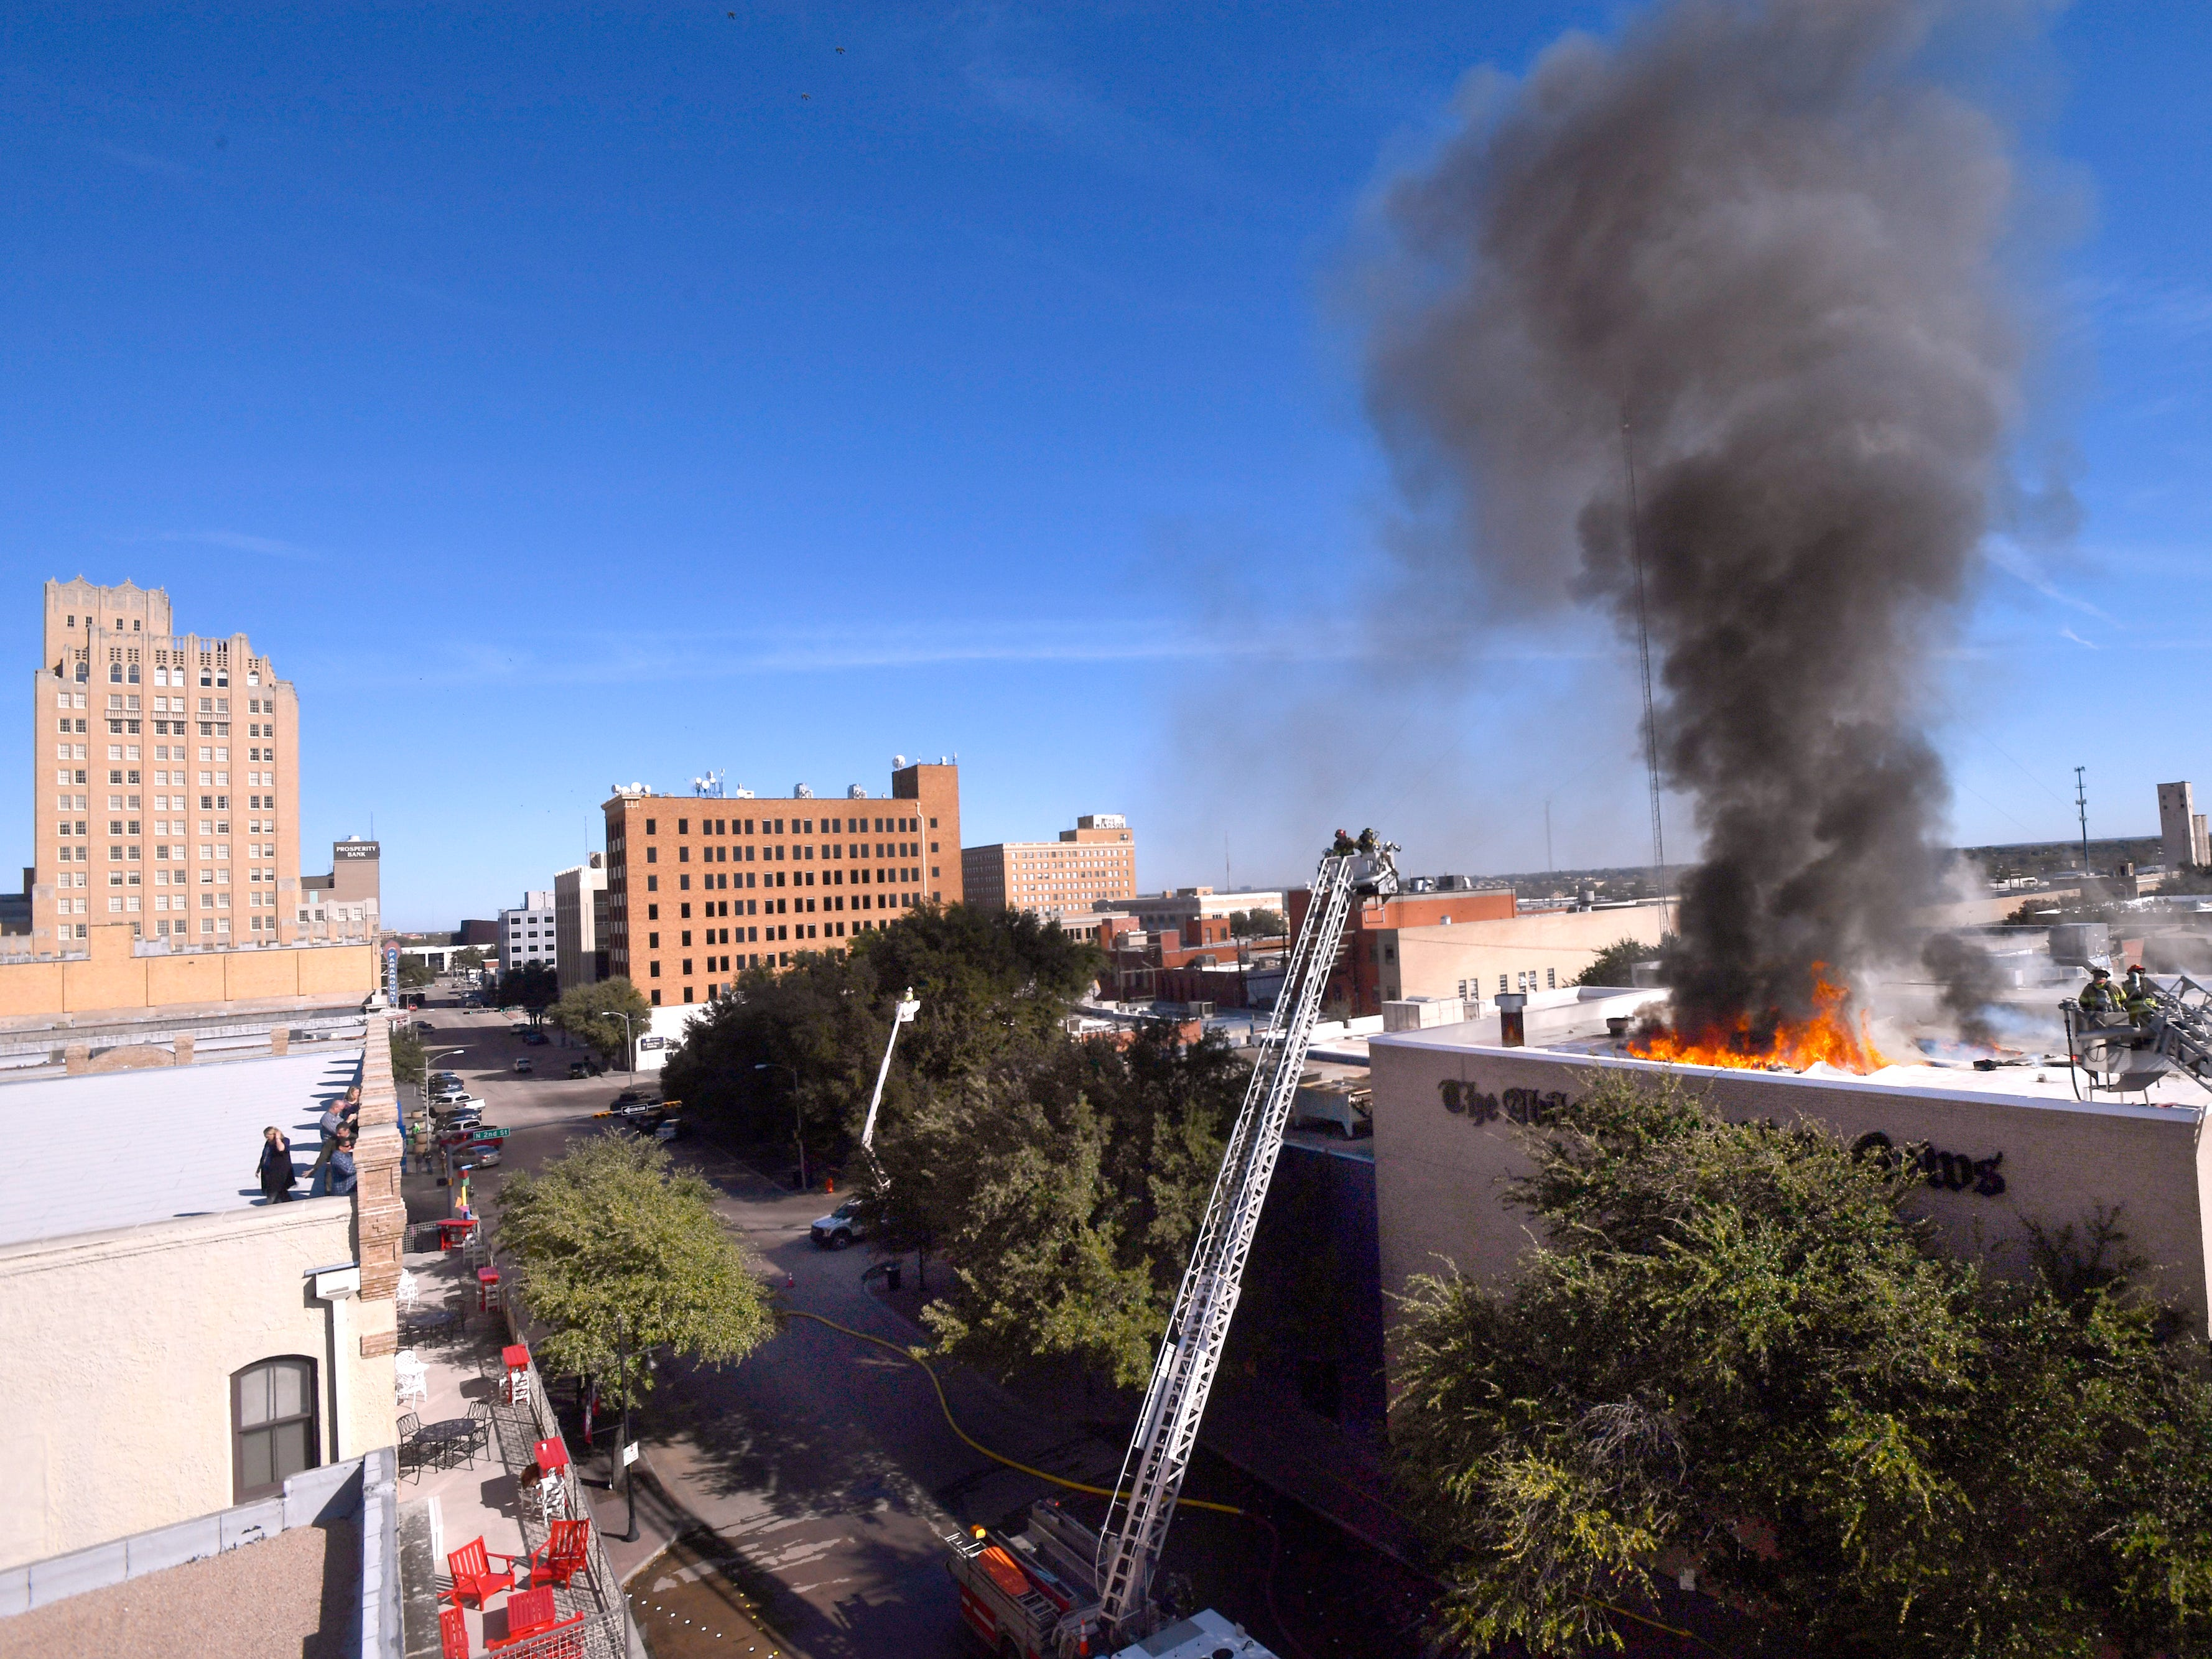 Abilene firefighters respond to a two-alarm blaze at the Abilene Reporter-News Thursday Nov. 15, 2018. The fire was called in at 9:20 a.m., at one time all three of the city's ladder trucks were employed during the fight.,